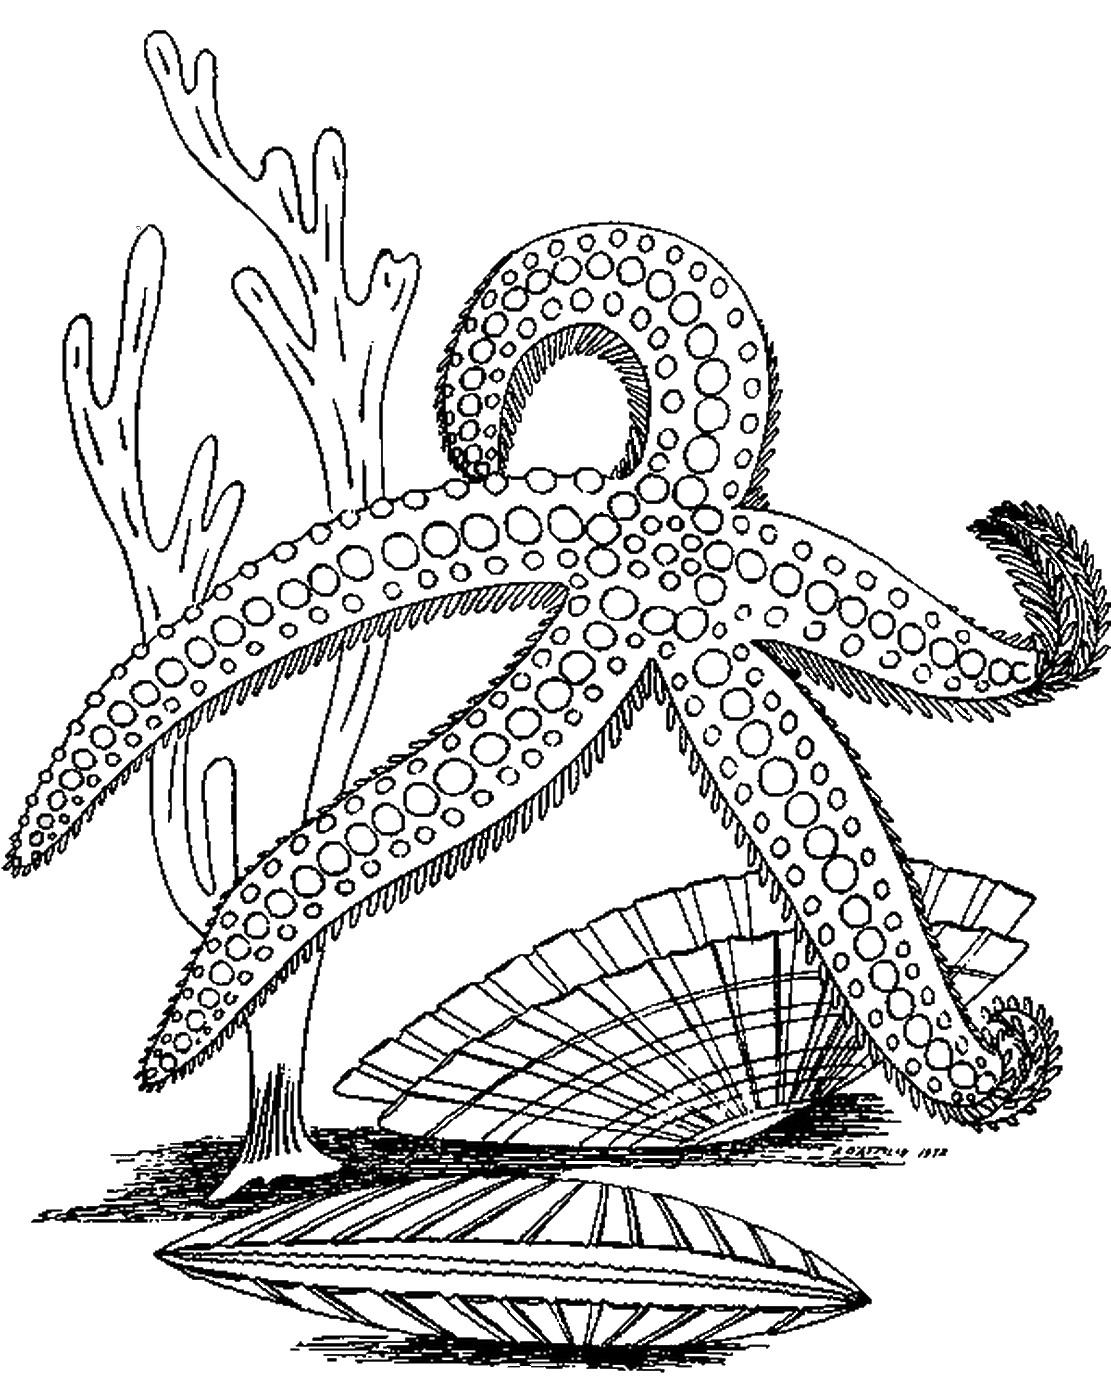 coloring sheet starfish coloring page starfish coloring pages to download and print for free page sheet coloring starfish coloring